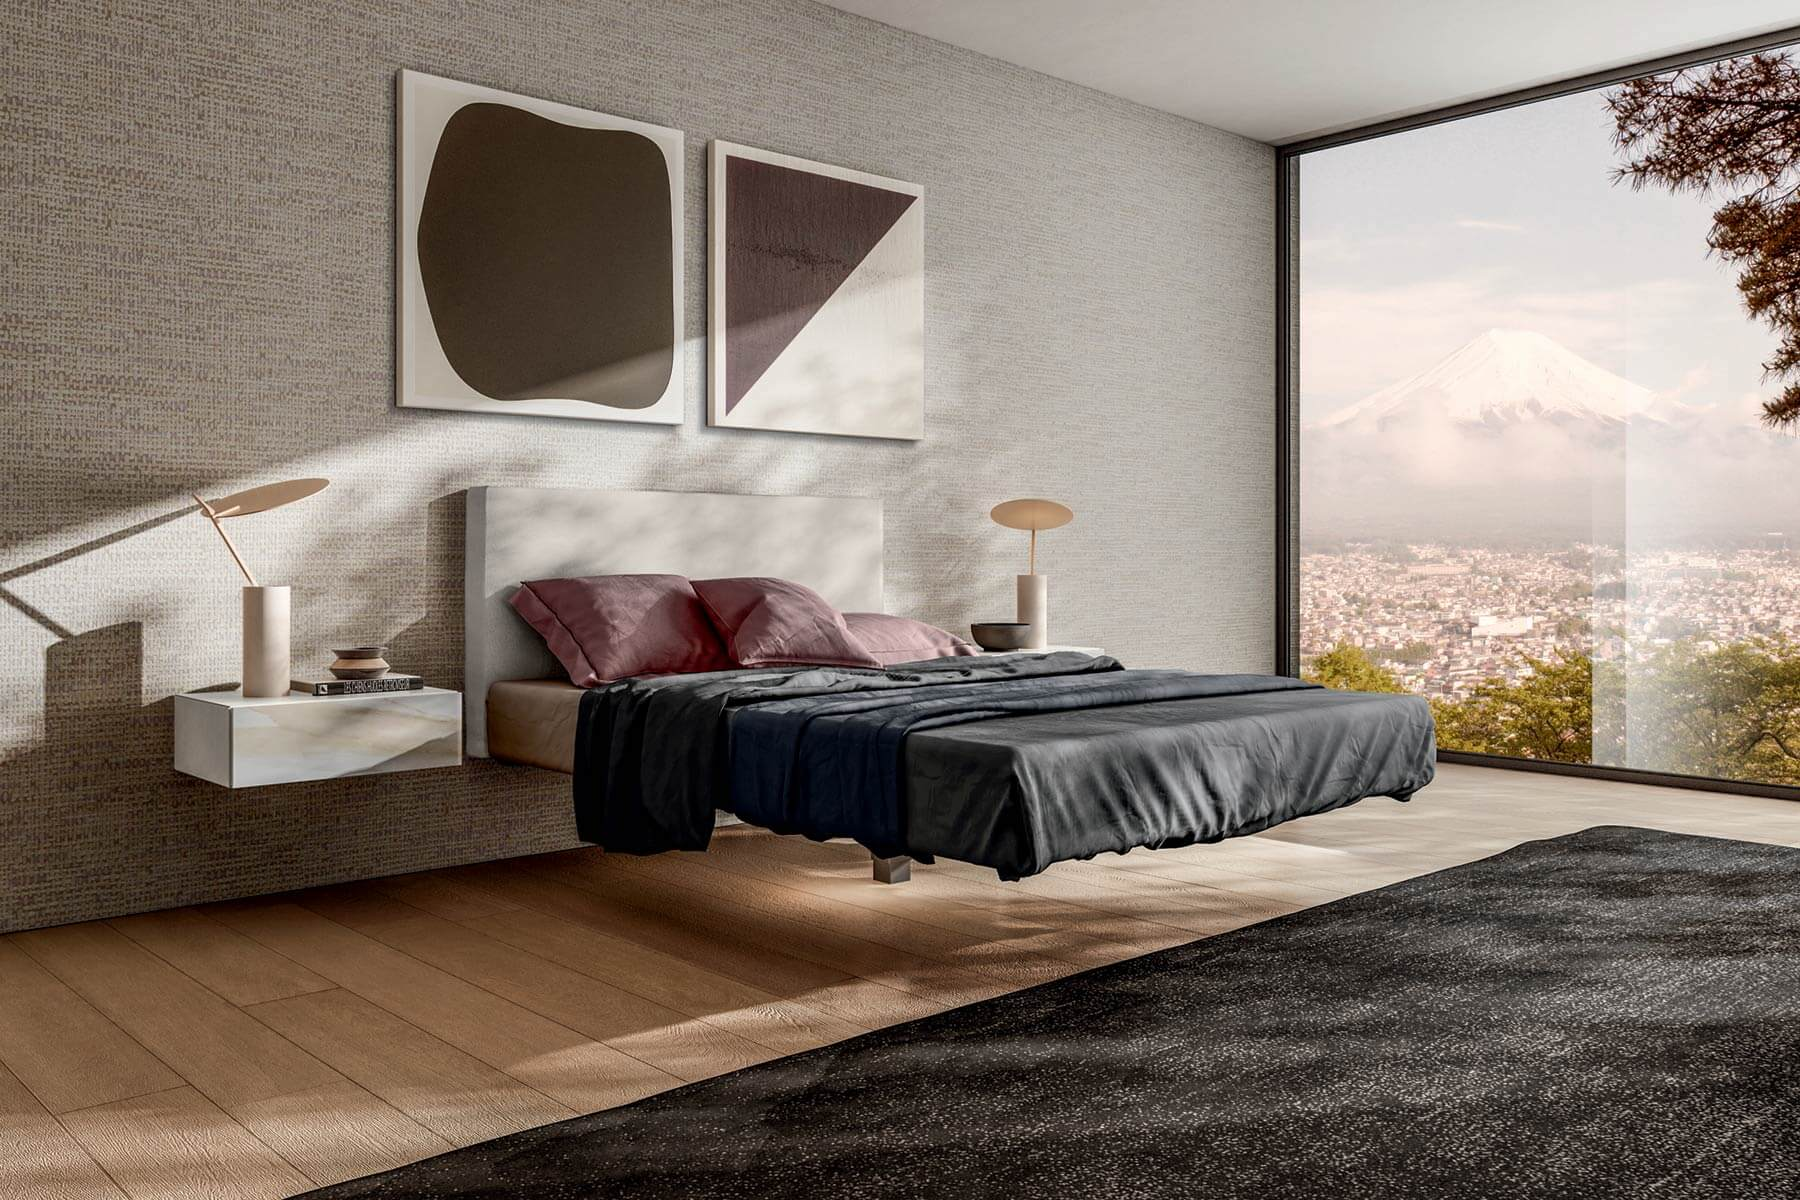 Flutta Bed A suspended bed for carefree dreams  LAGO Design